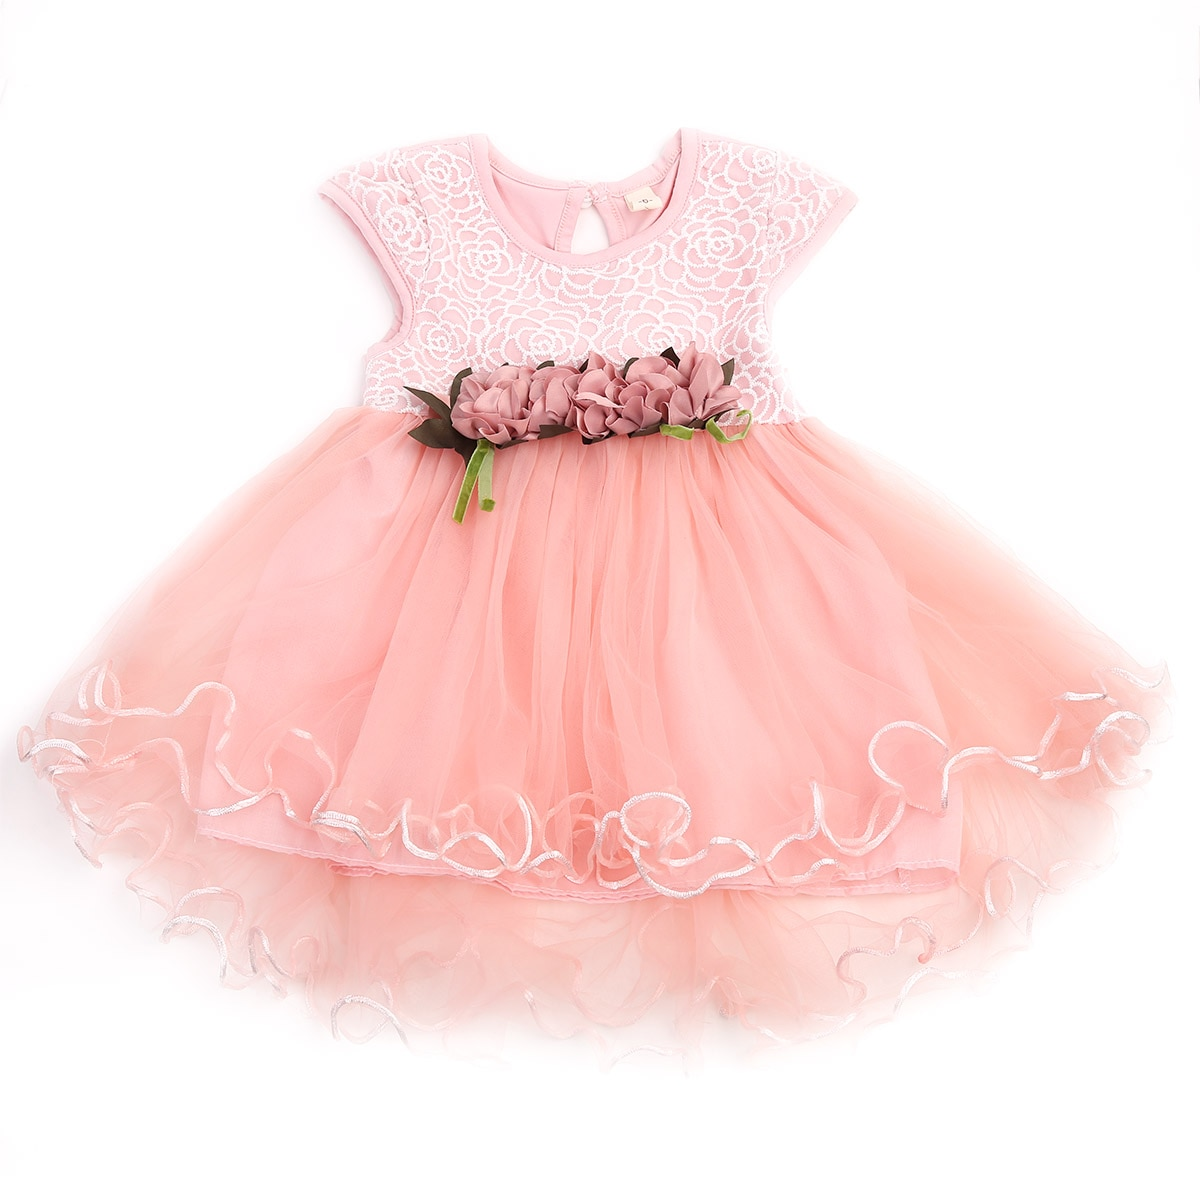 Girls Bridesmaid Dress Baby Flower Kids Party Rose Bow Wedding Princess Dresses Summer Sundress 0-3Years children flower girls dress princess kids dress with bow summer flower girls wedding party clothes kids prom gowns with necklace